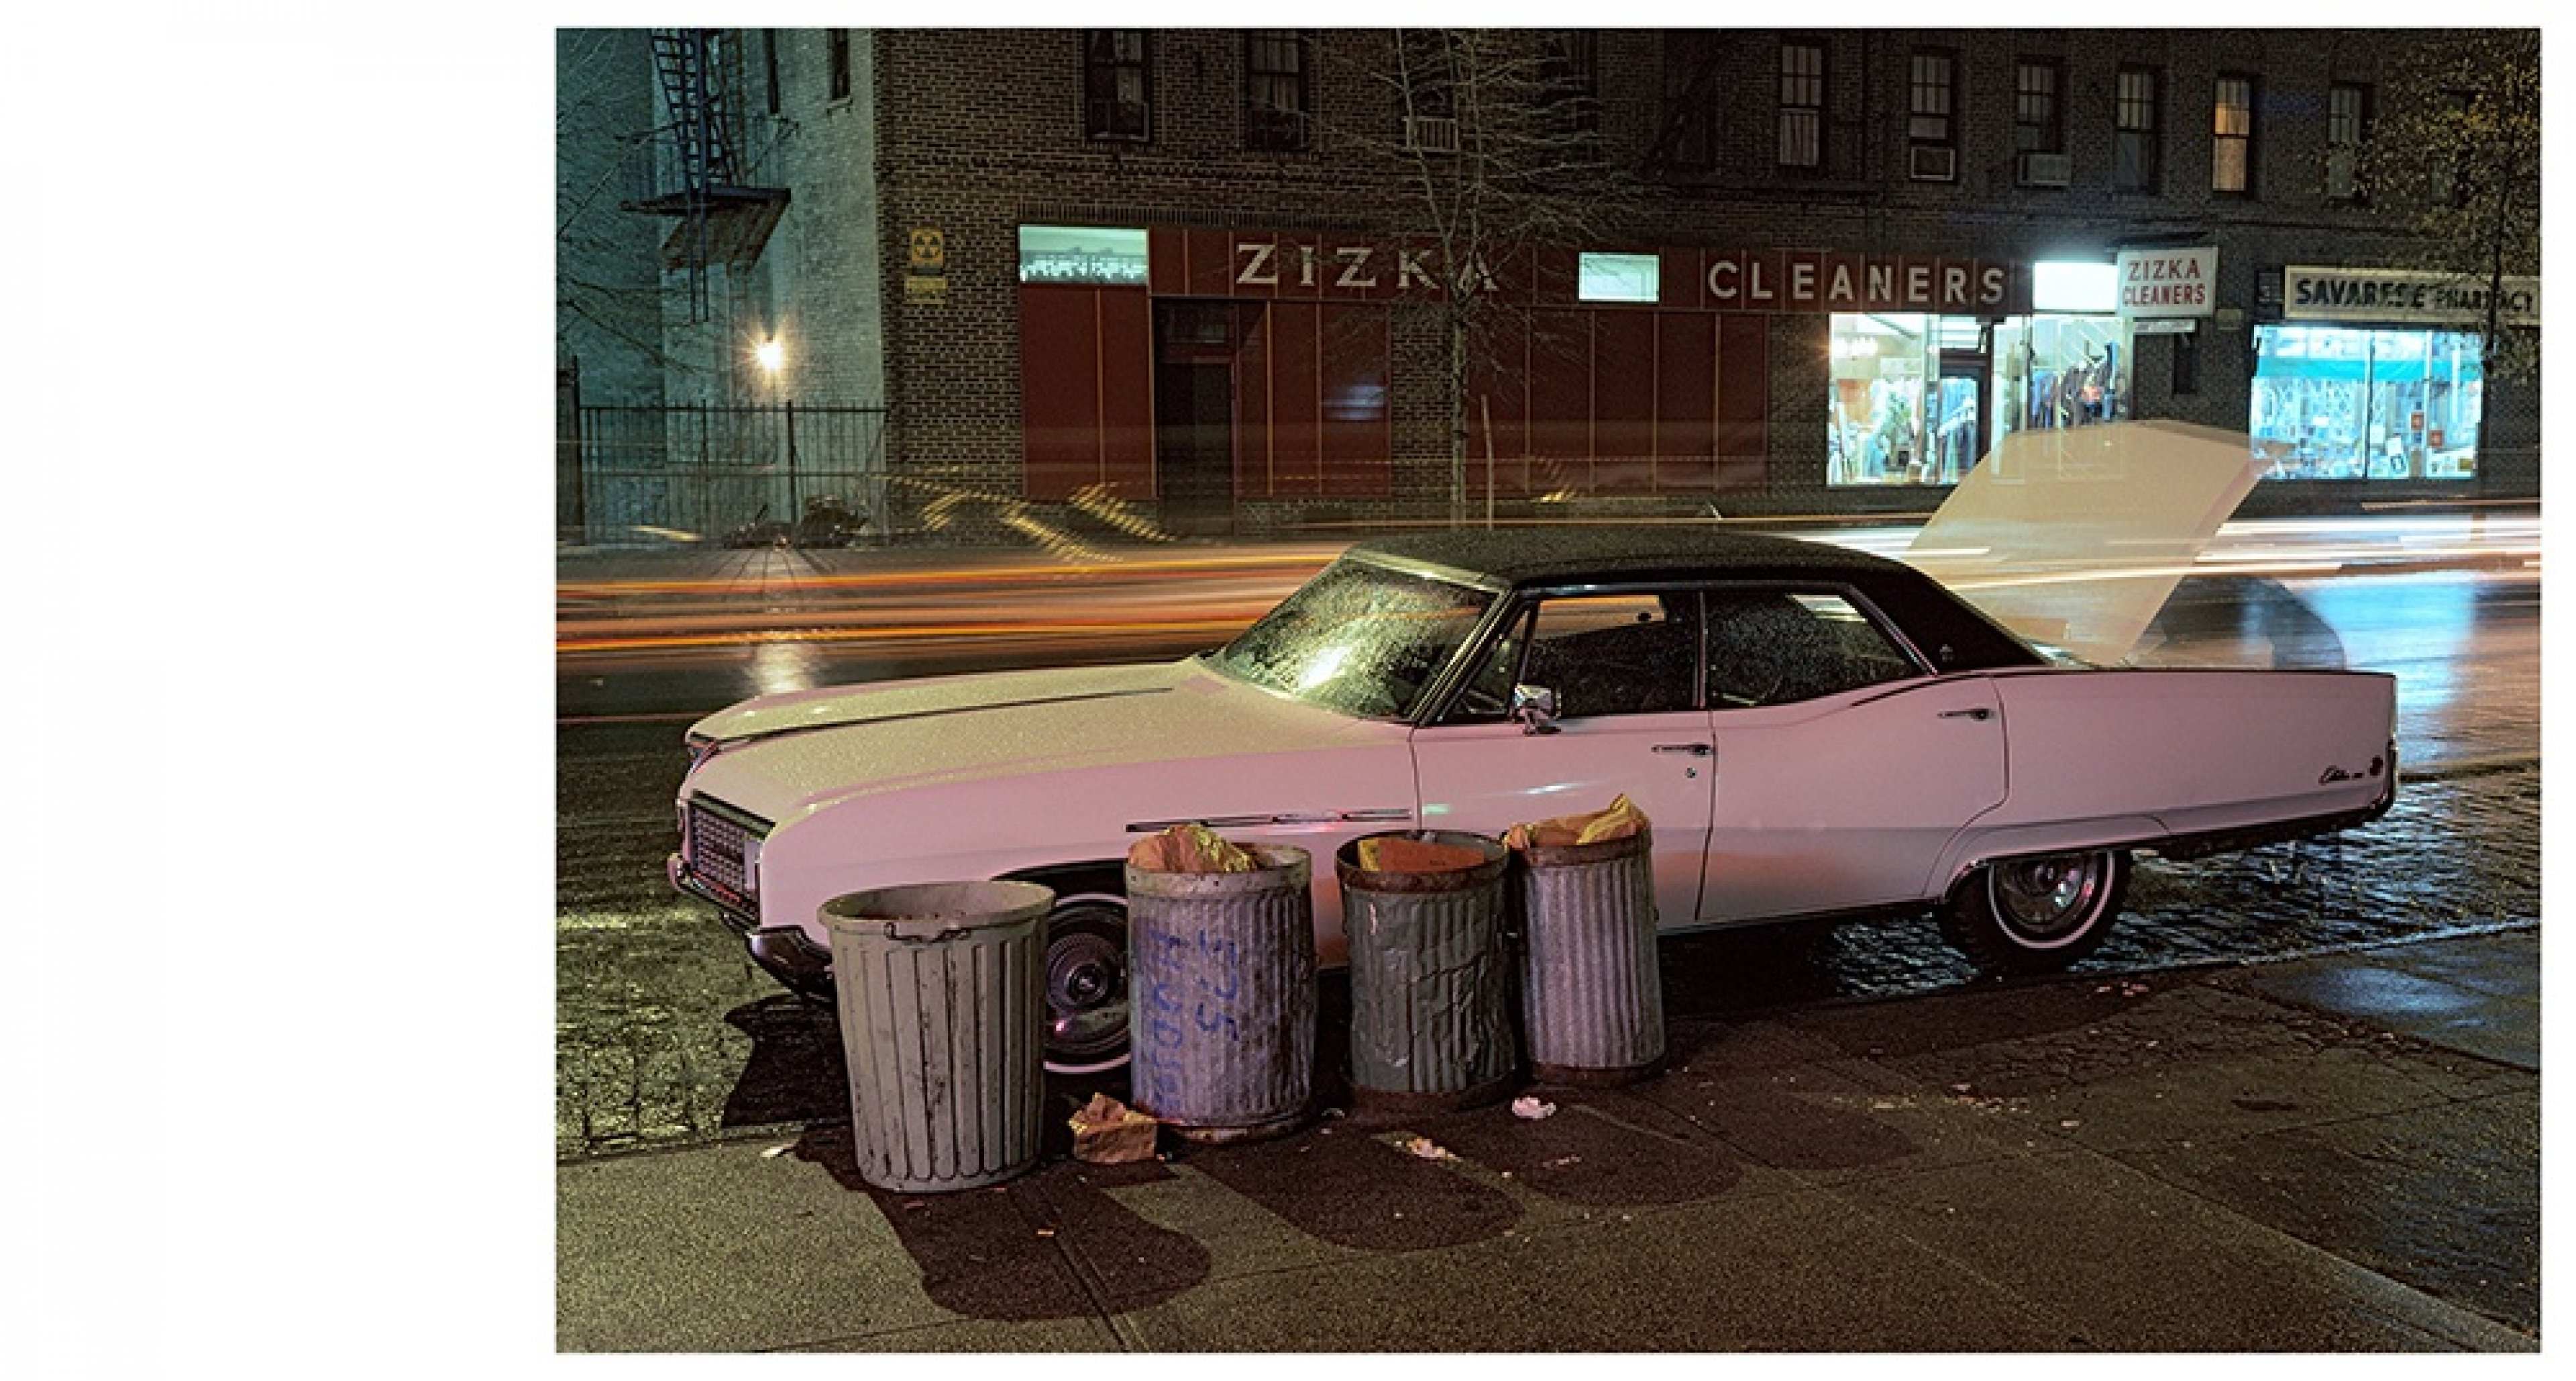 Langdon Clay Zizka Cleaners car, Buick Electra Series Cars, New York City, 1976 Slide-show Courtesy of the artist © Langdon Clay